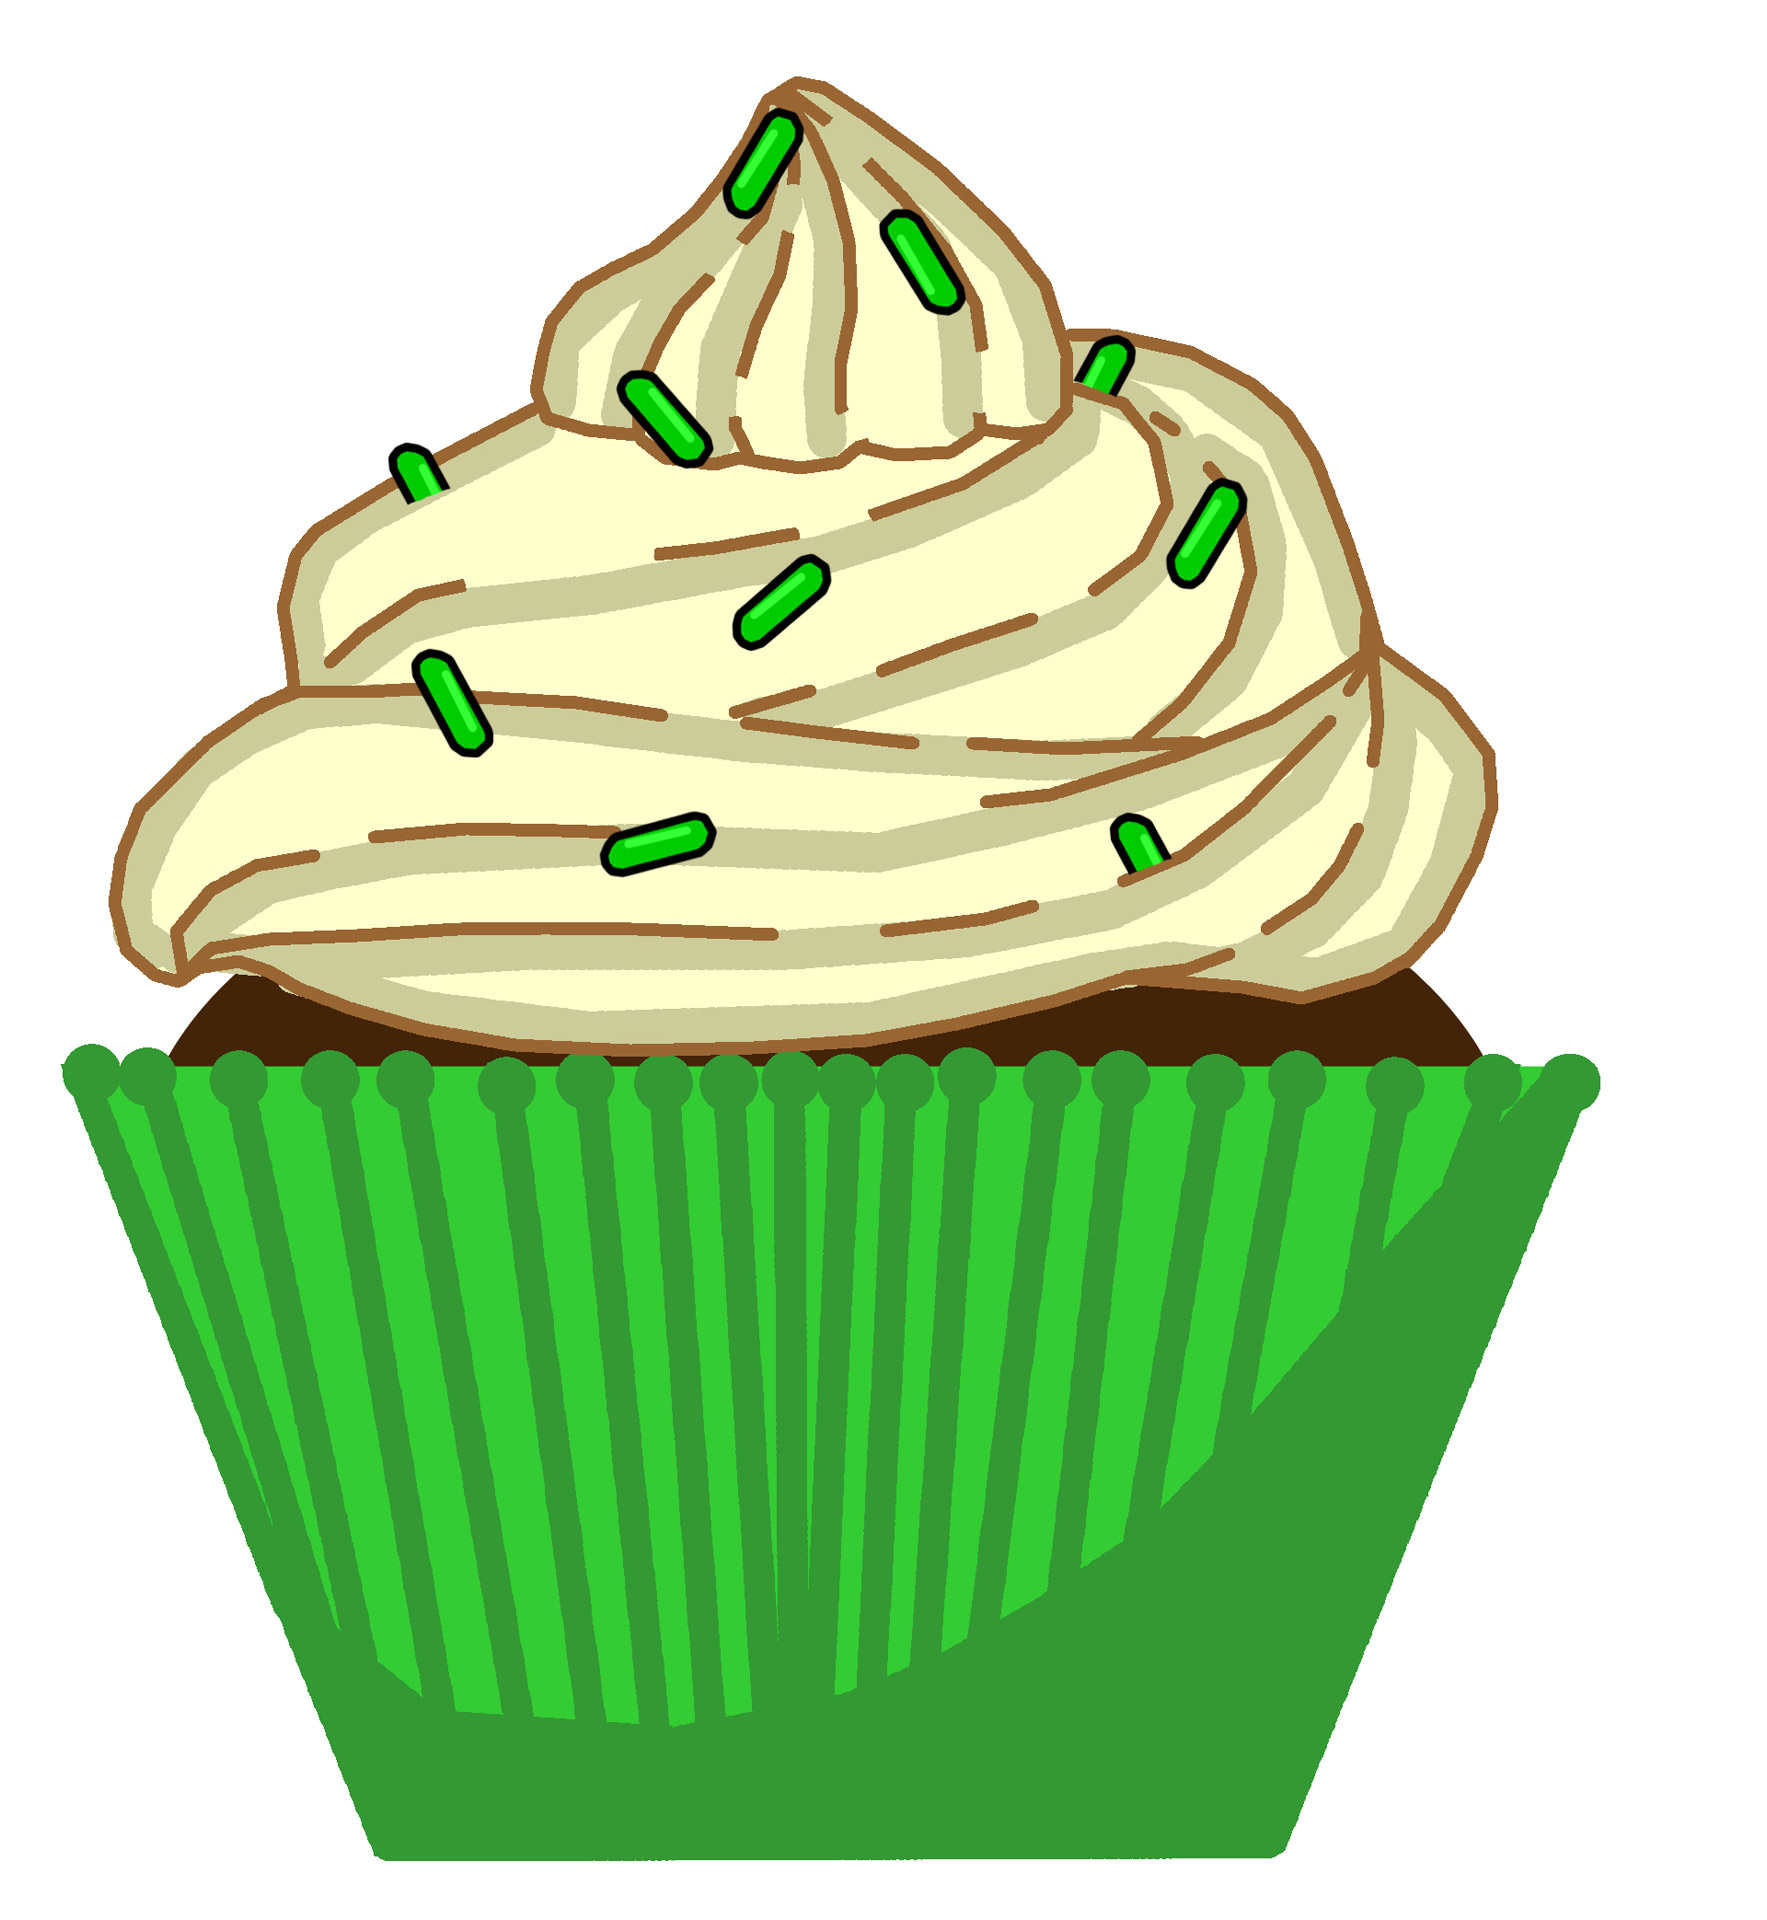 Green Mint Cupcake Free Stock Photo.